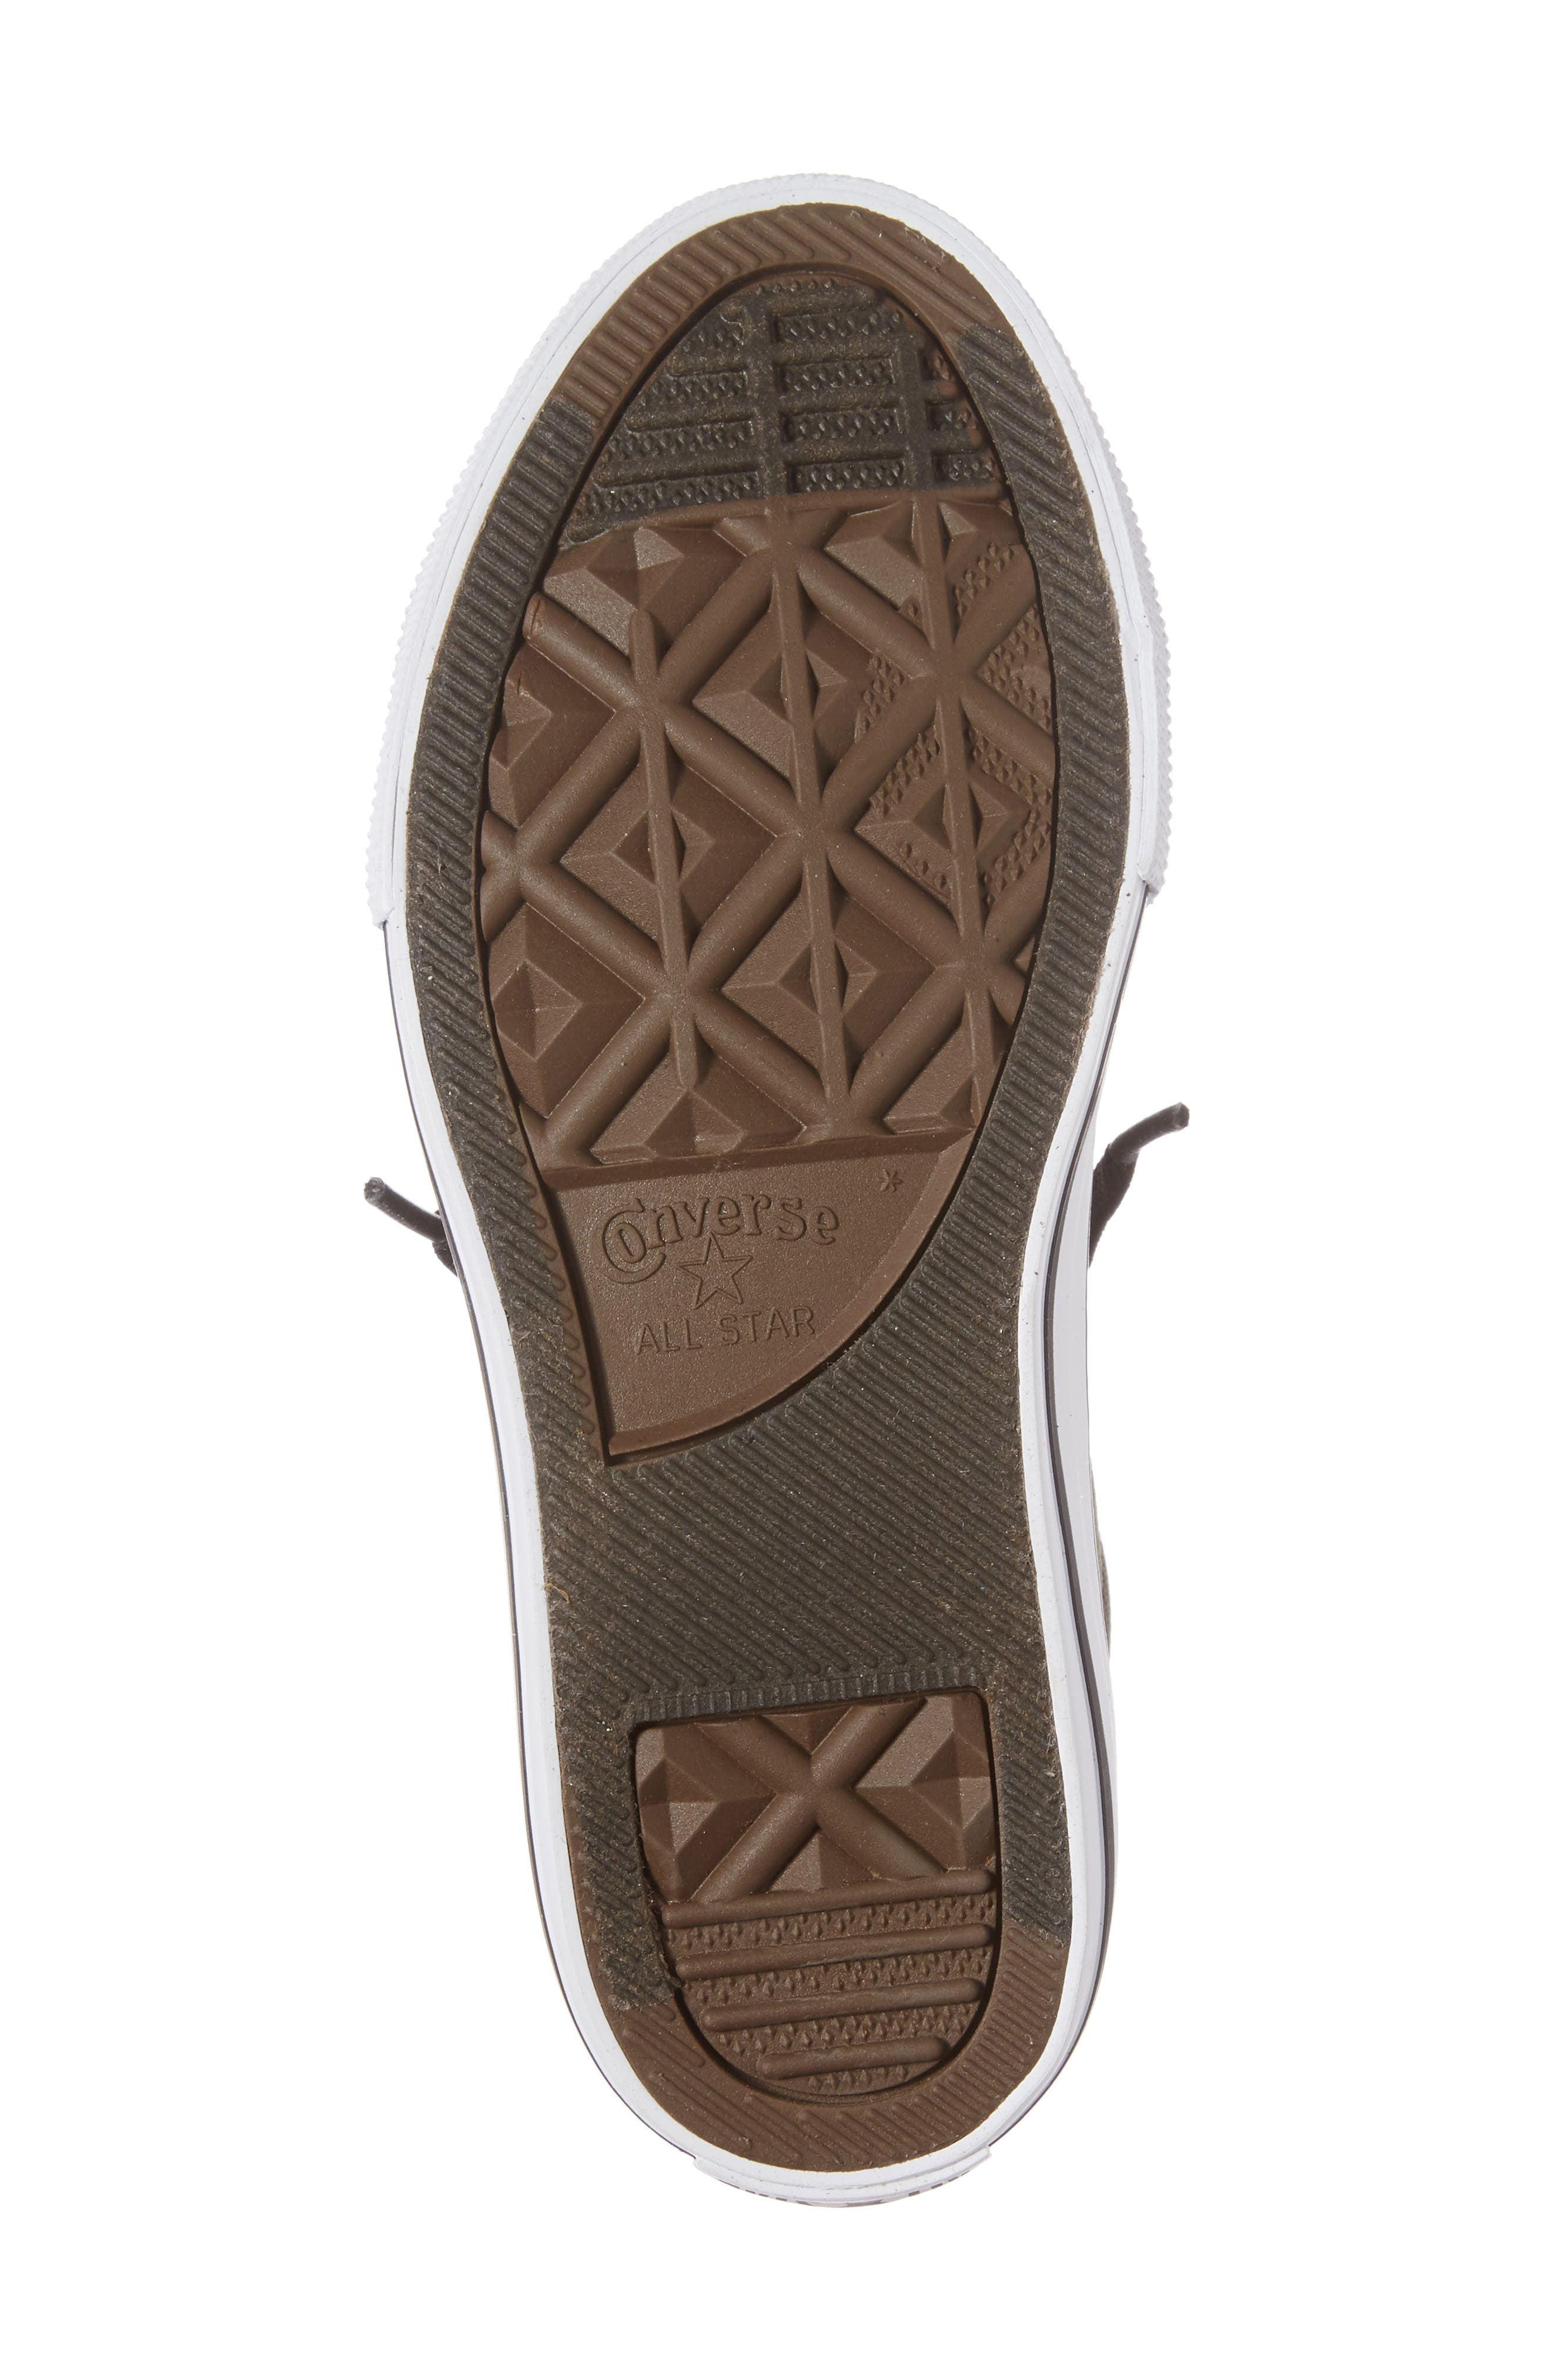 Chuck Taylor<sup>®</sup> All Star<sup>®</sup> Basket Weave Street Mid Sneaker,                             Alternate thumbnail 6, color,                             342